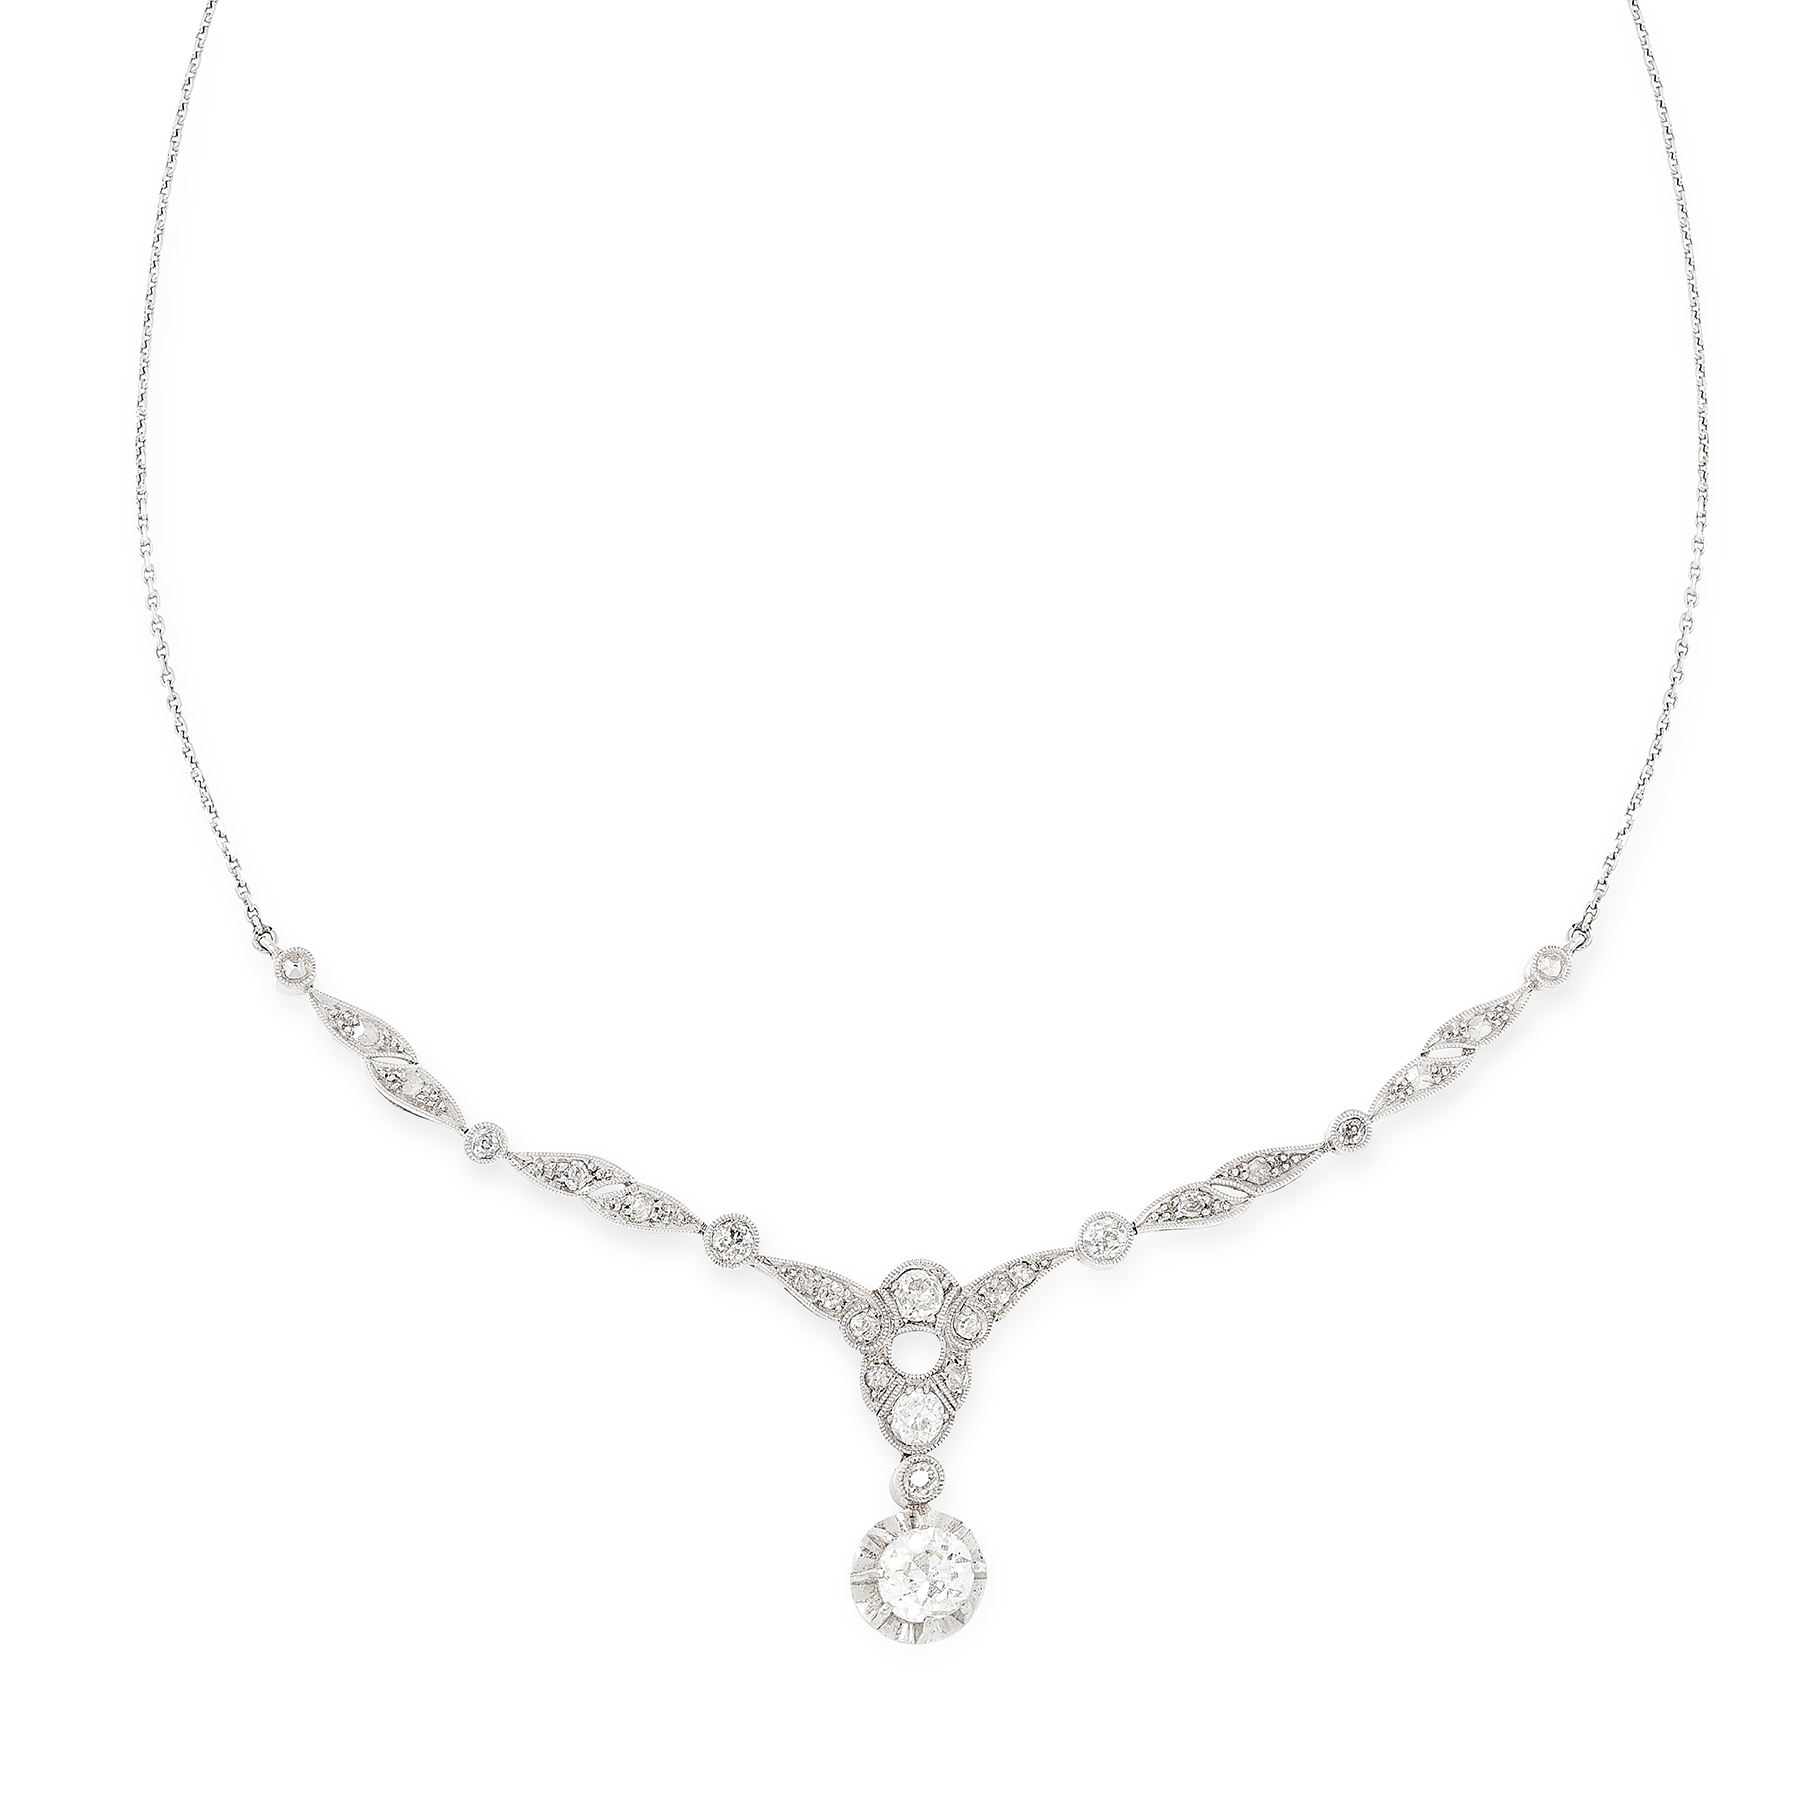 Lot 57 - A DIAMOND NECKLACE, EARLY 20TH CENTURY set with a principal old cut diamond of 0.84 carats suspended